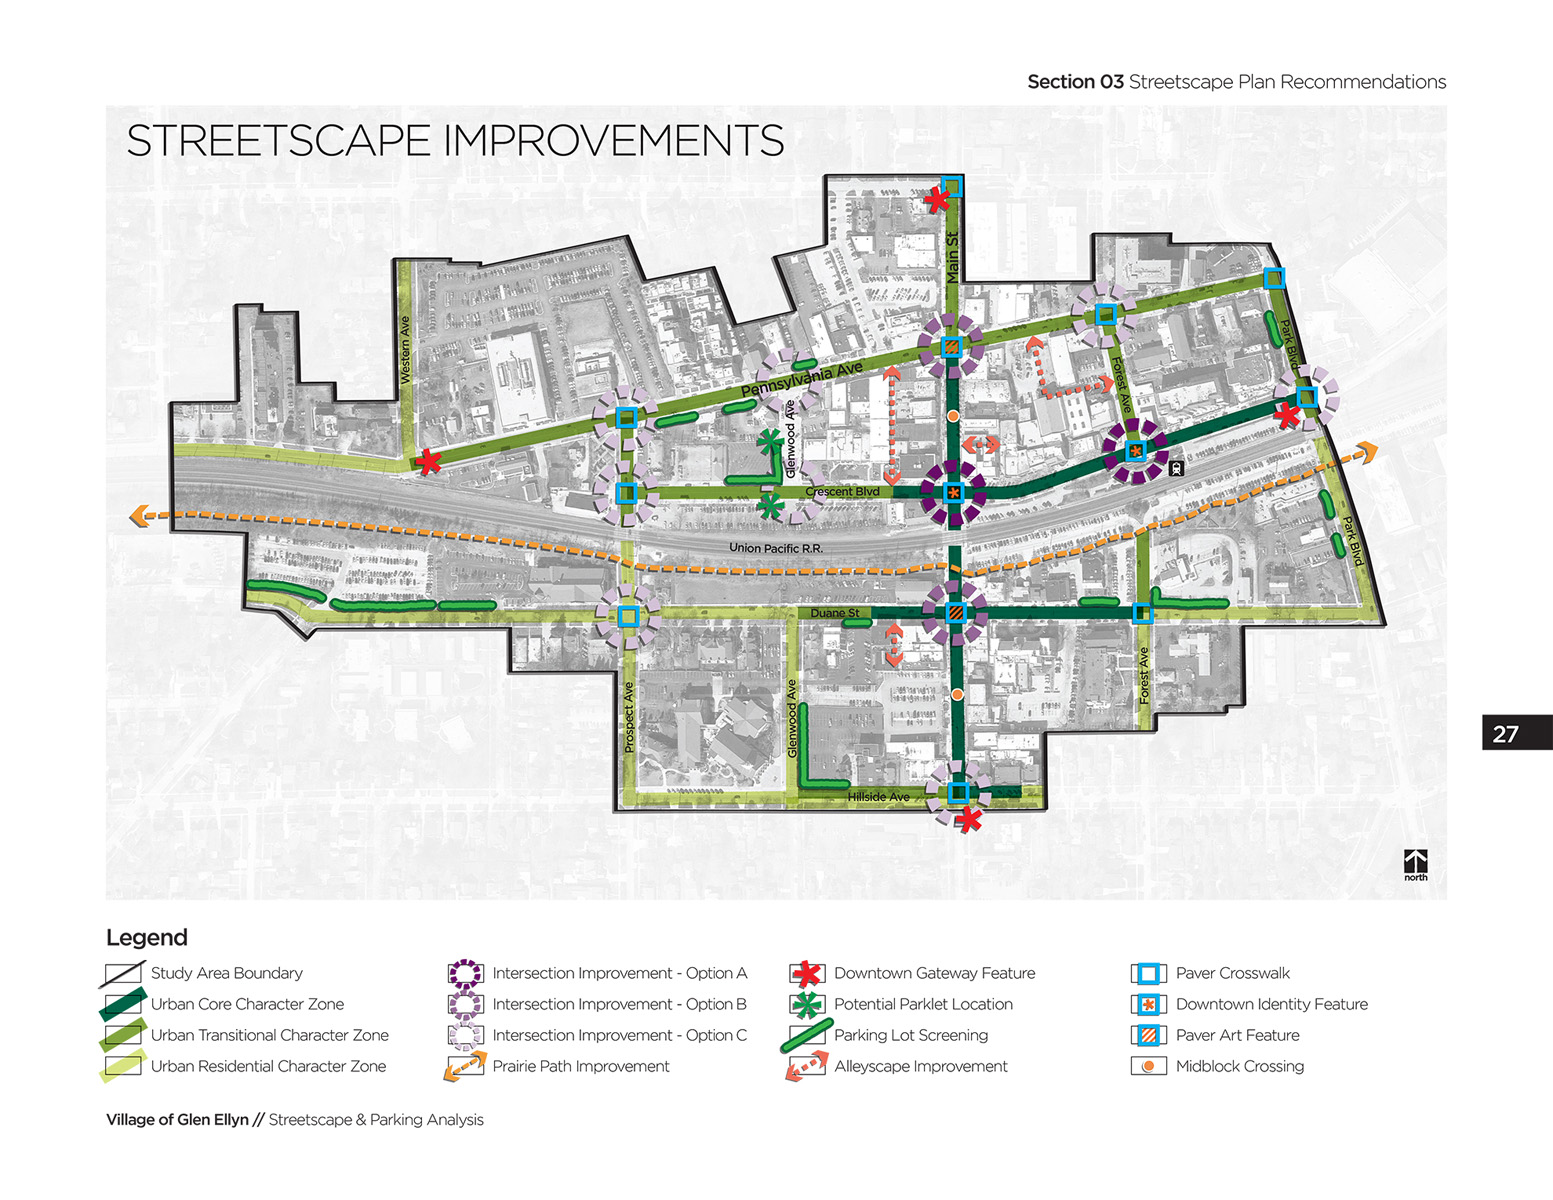 http://www.hlplanning.com/portals/wp-content/uploads/2014/10/Glen-Ellyn-Streetscape-Plan-Parking-Study-31.jpg